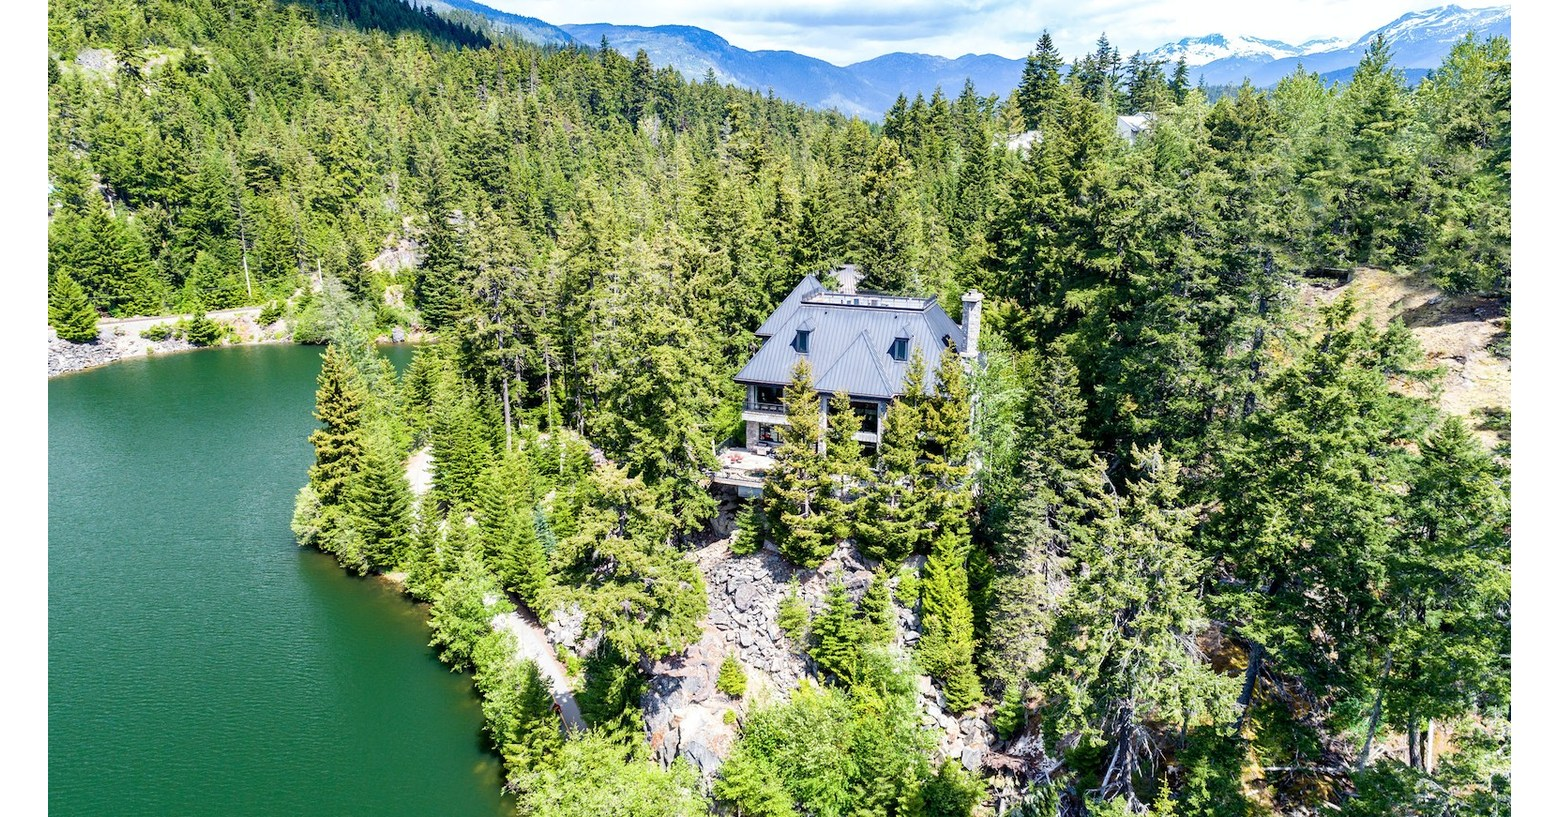 Bidding Open For Without Reserve Auction Of Whistler, British Columbia Lakefront Residence